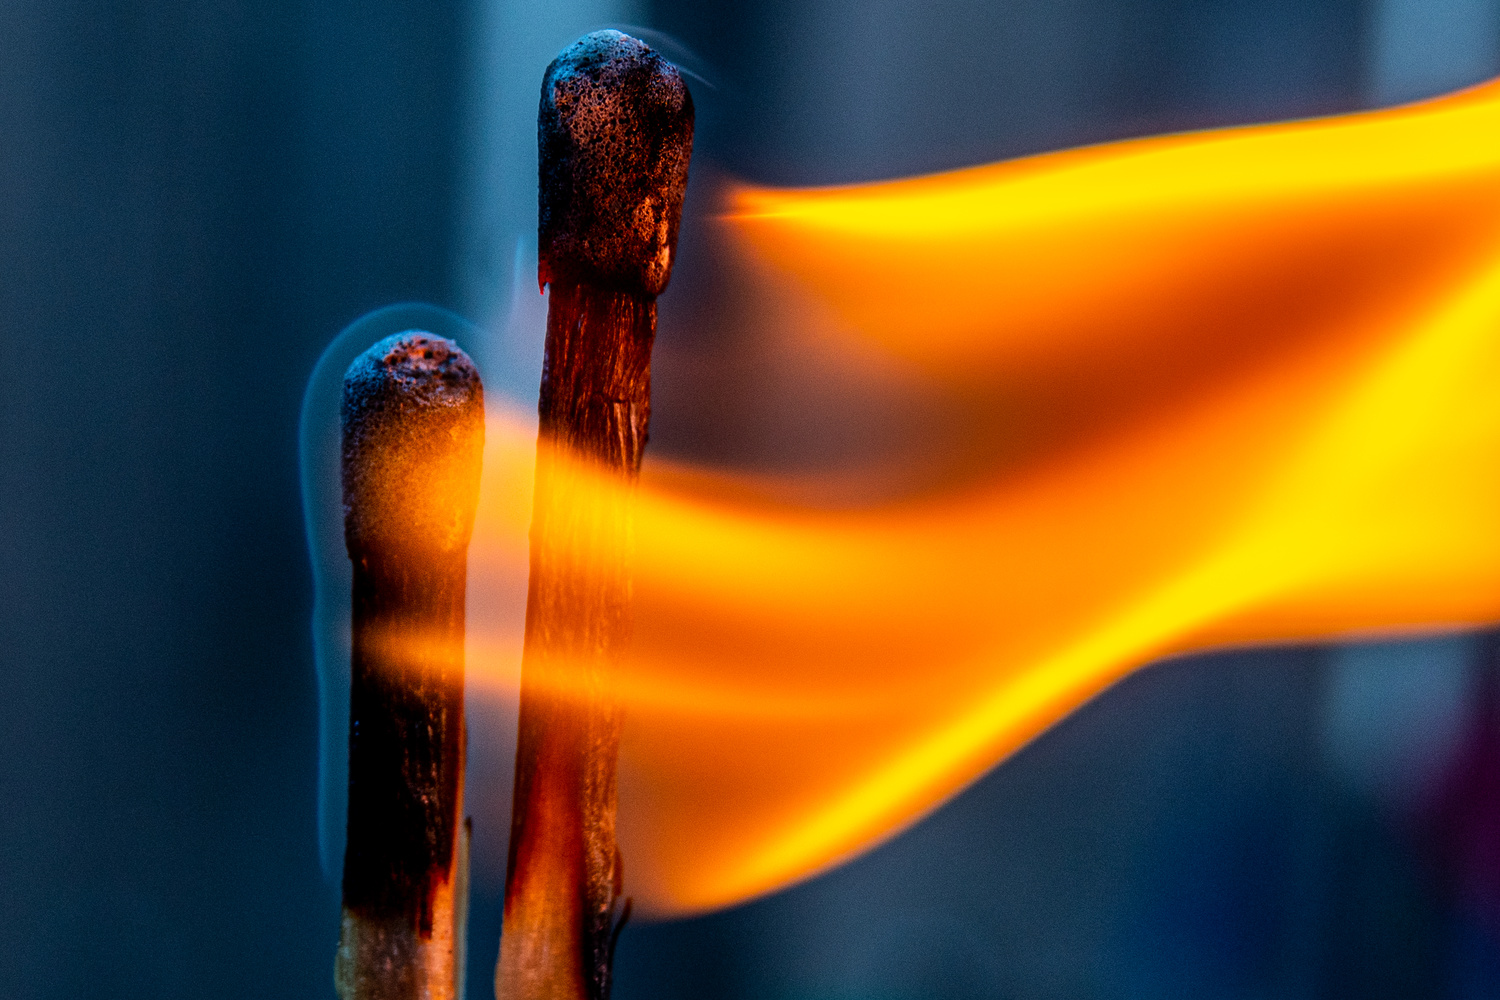 Macro Matches by Jacob Pelley